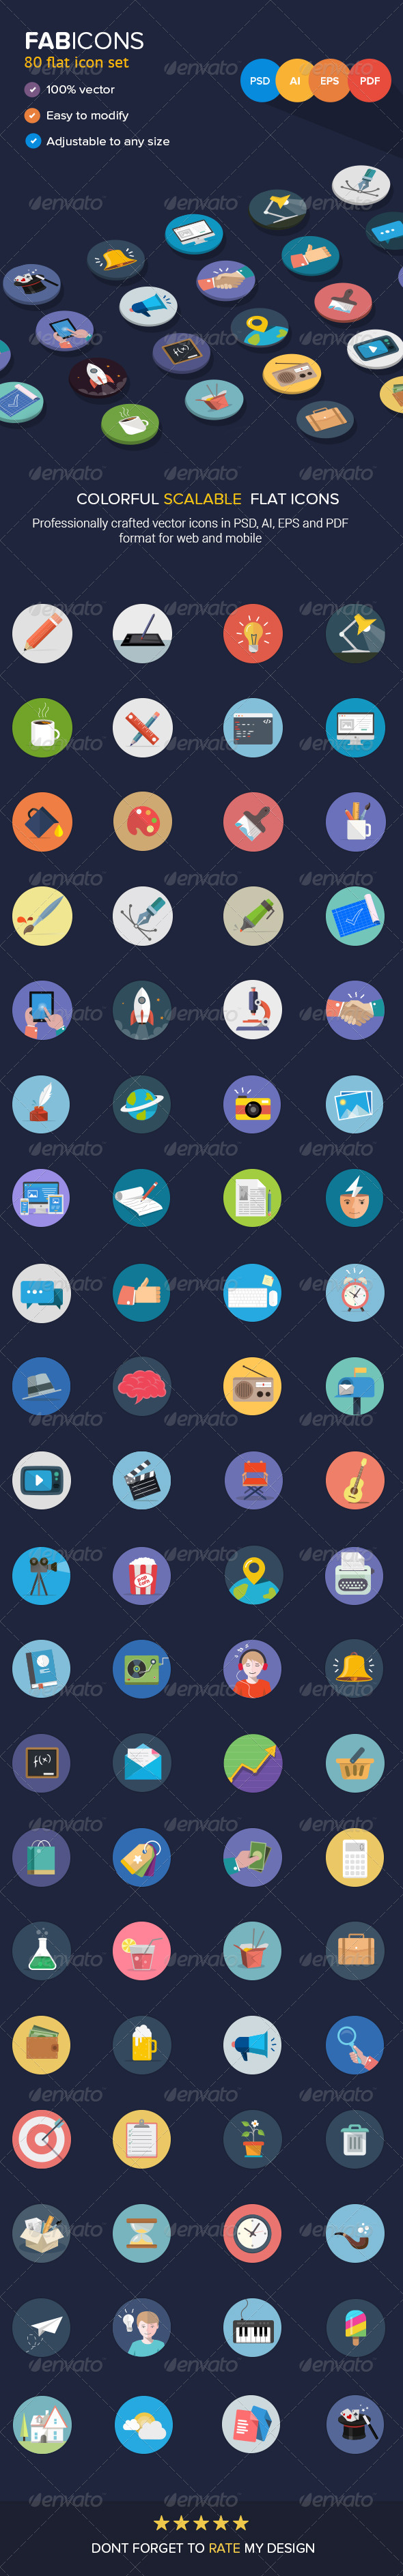 80 Fresh Flat Vector Icons - Web Icons